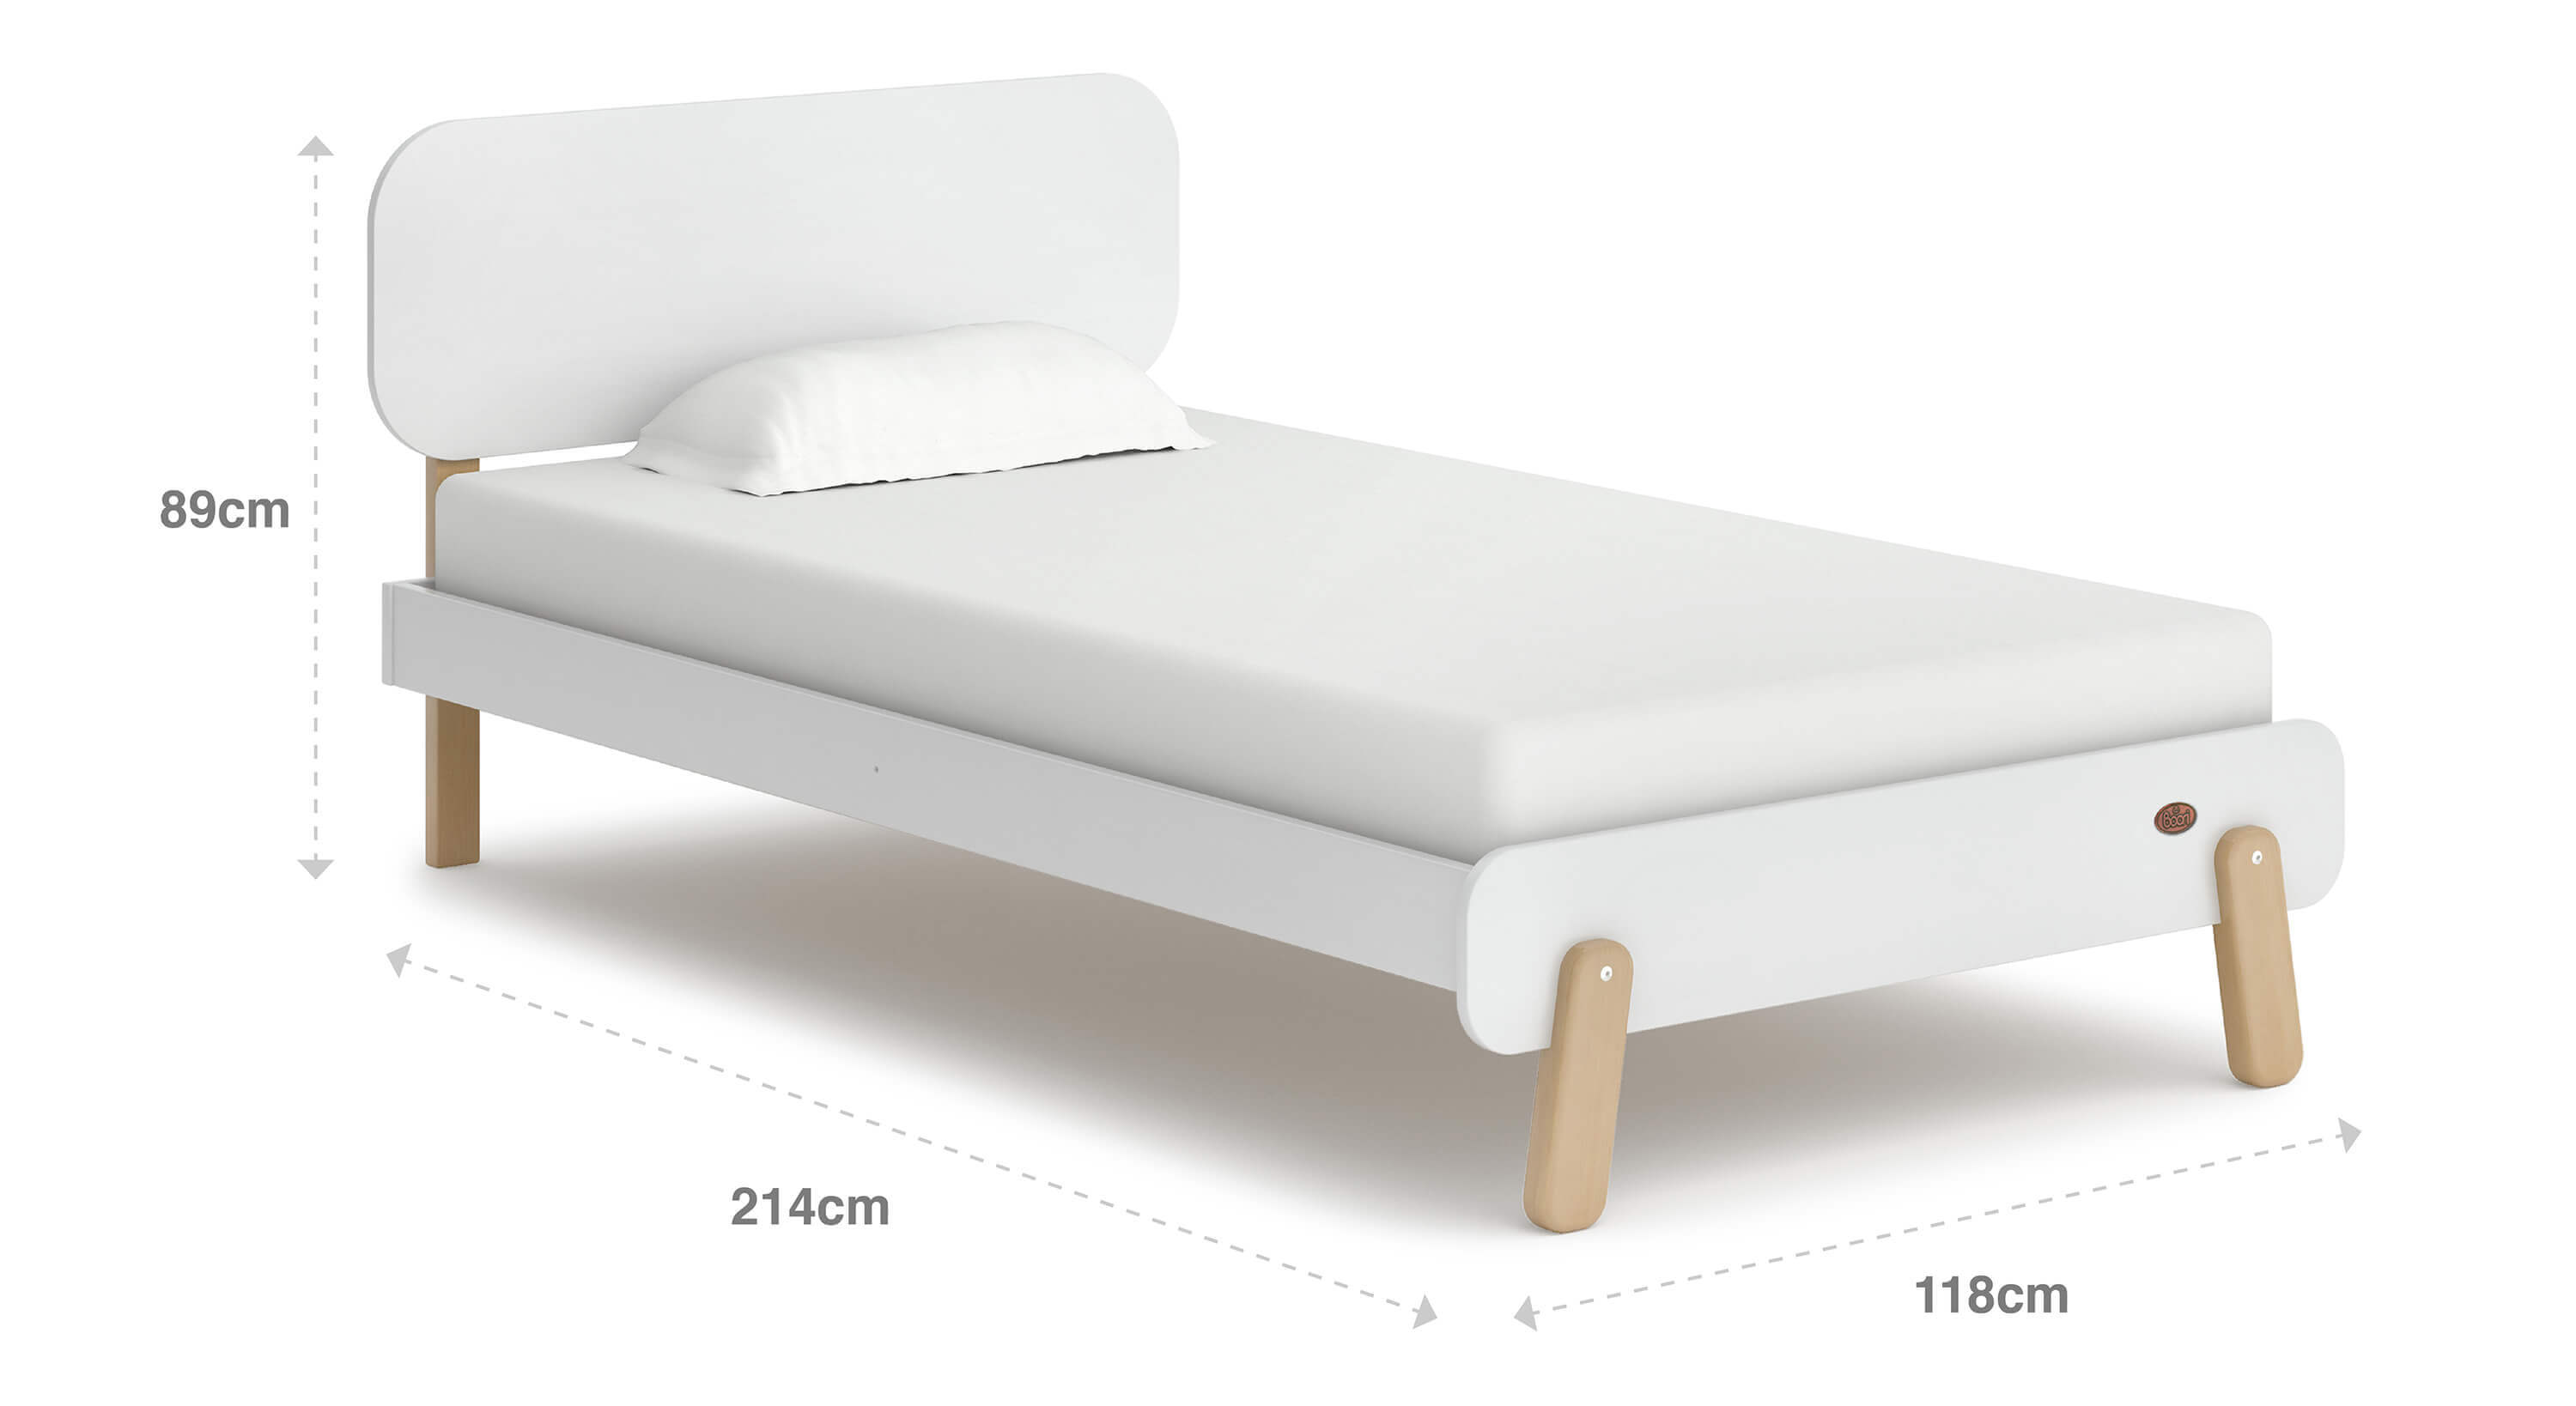 Product_Dimension_Images_Beds_June_2021-016